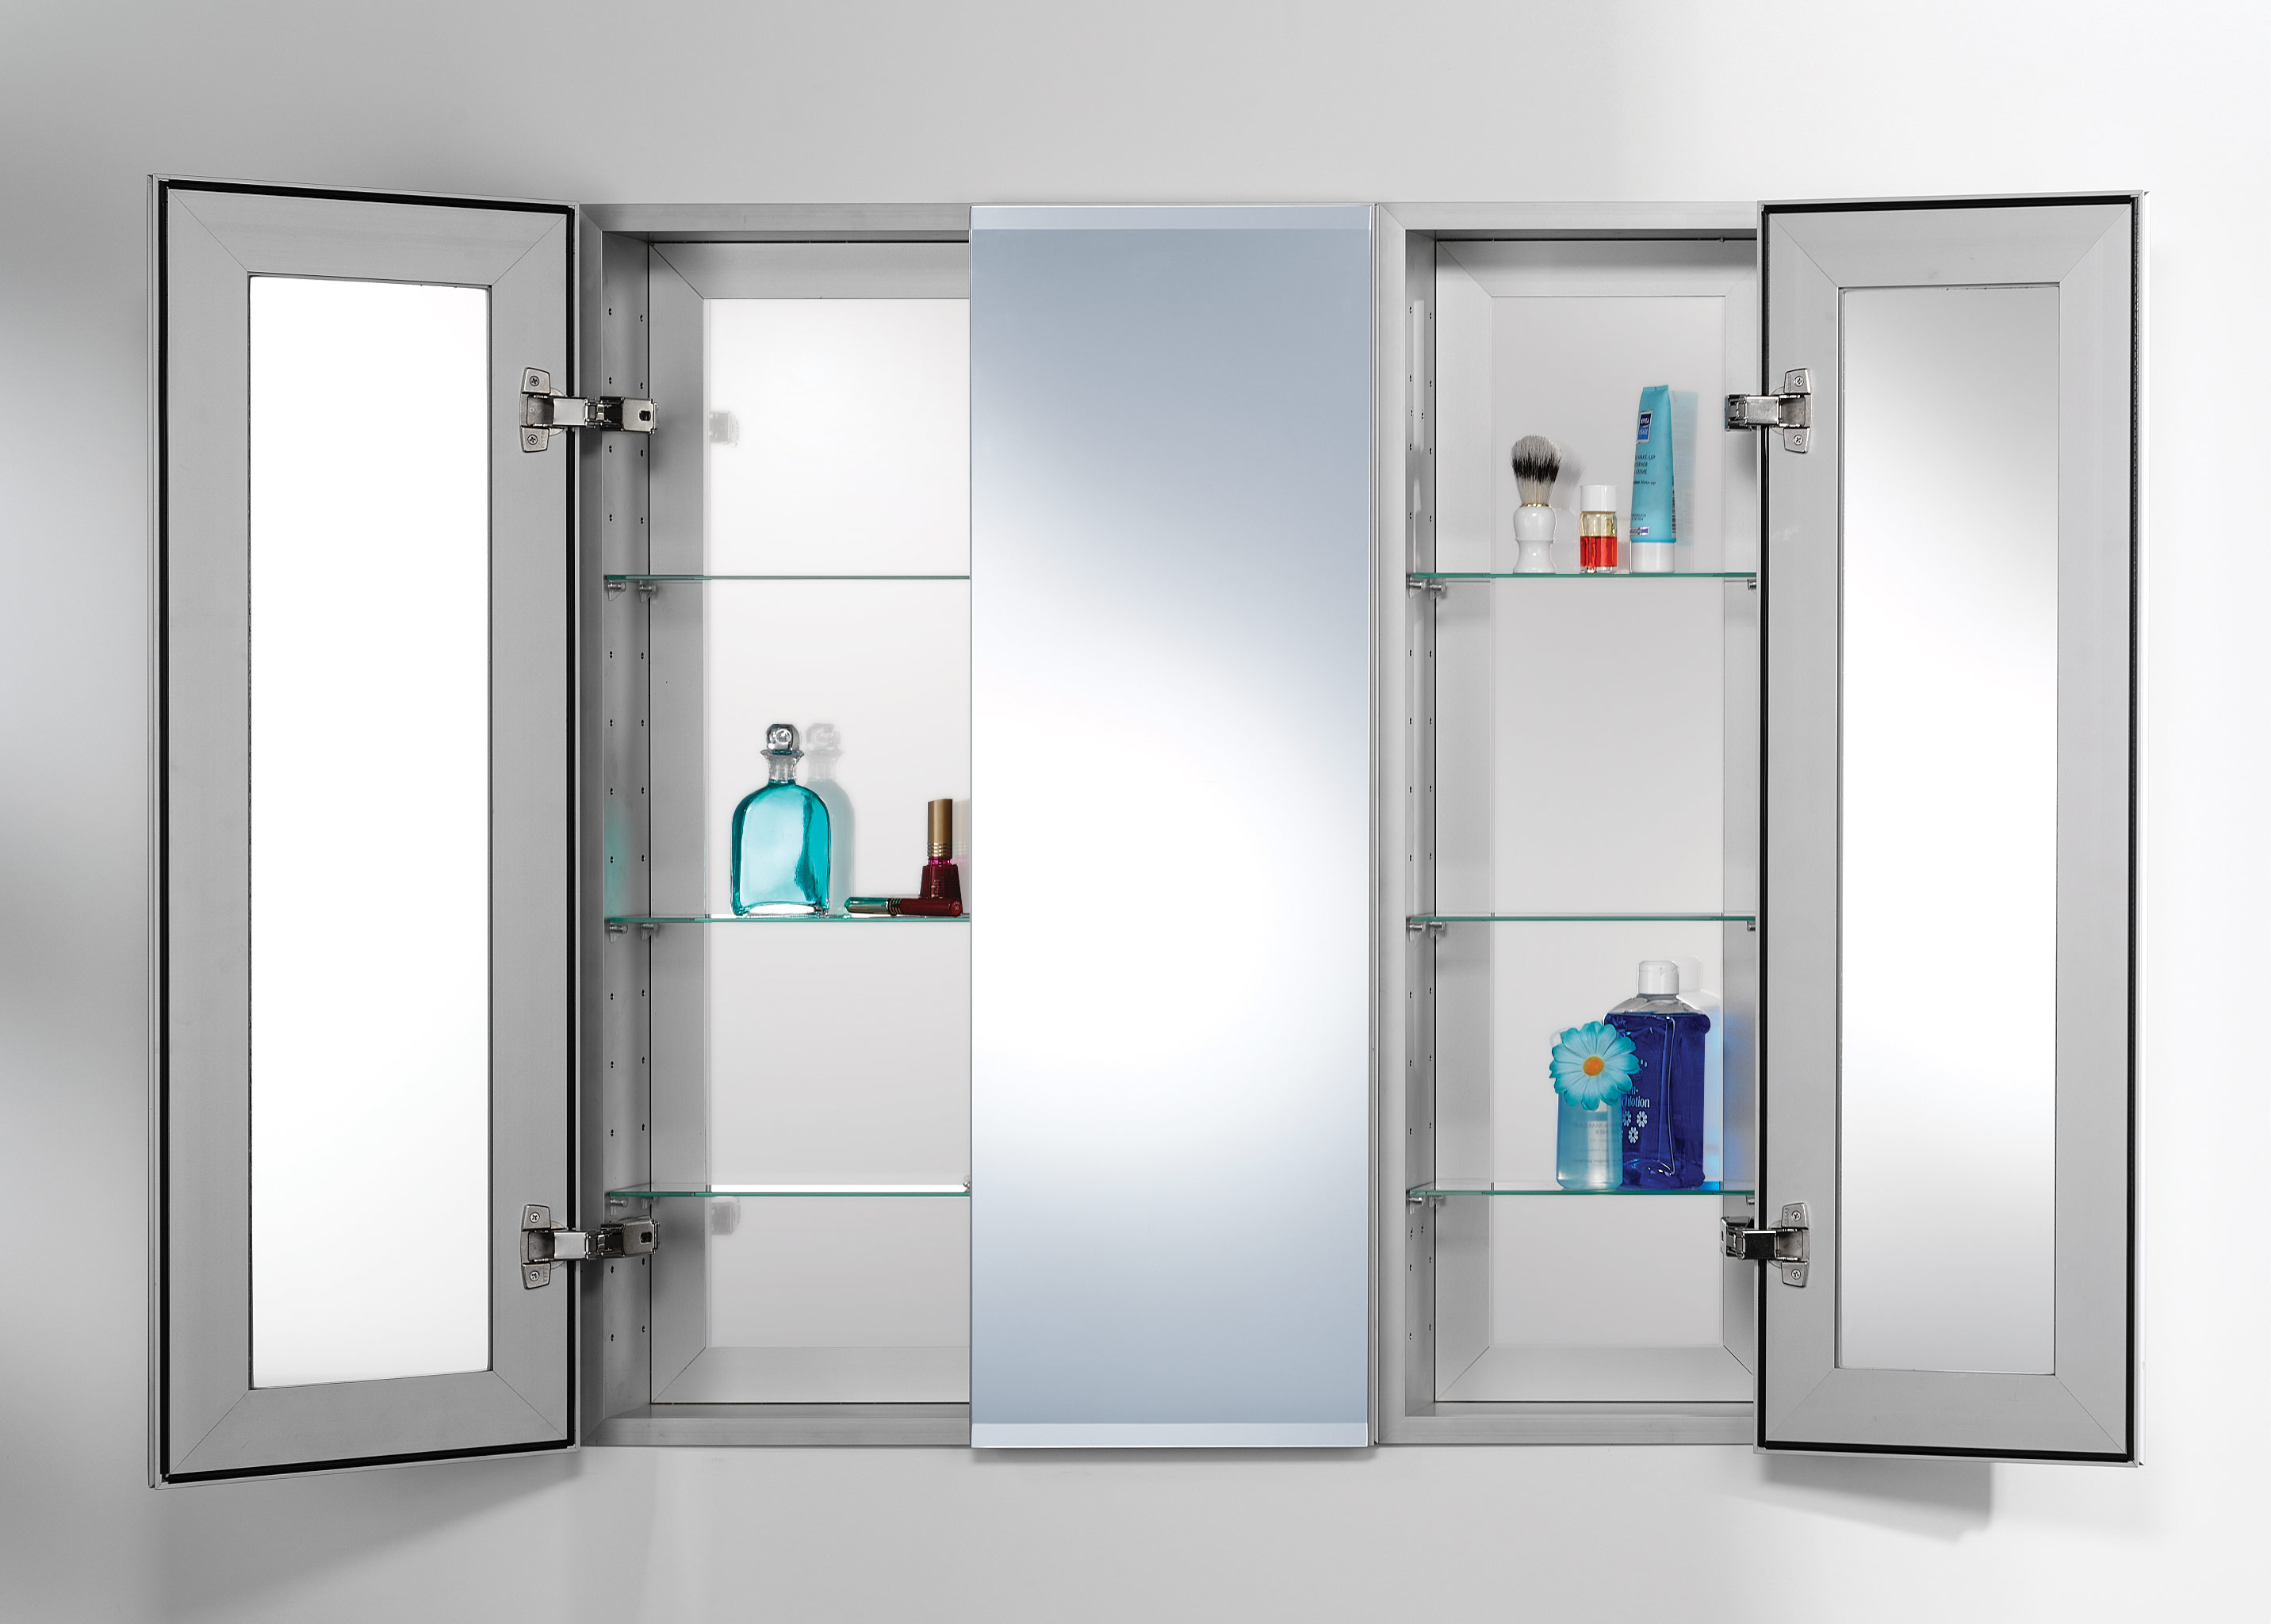 Bathroom medicine cabinets with lights recessed mirrored - Bathroom mirrors and medicine cabinets ...